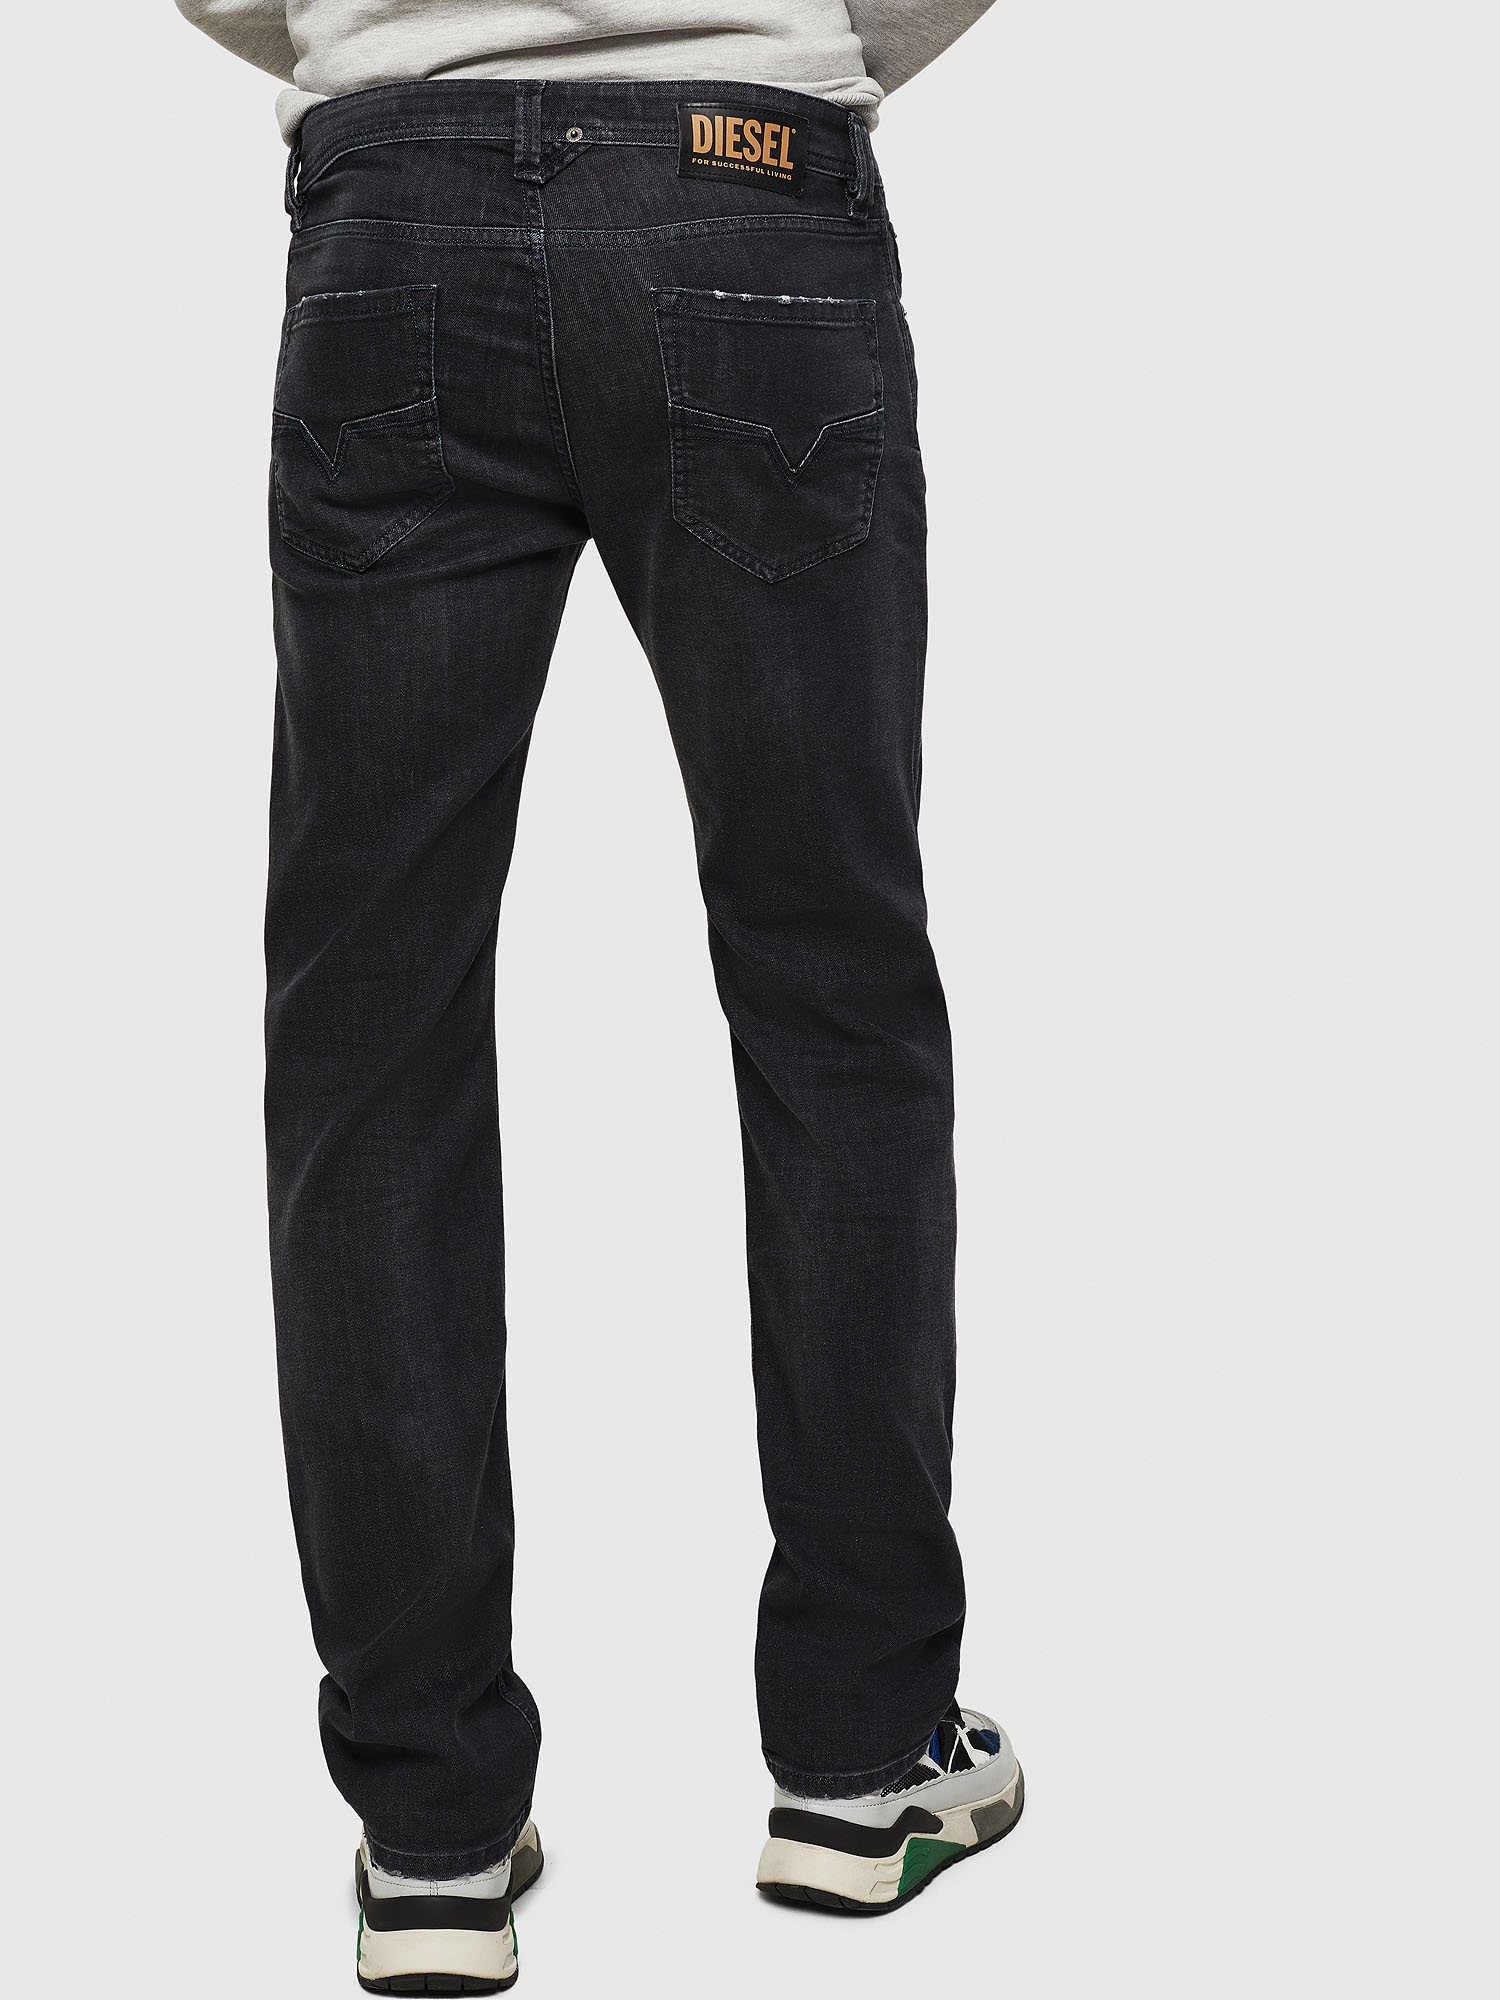 Diesel - Larkee 082AS,  - Jeans - Image 2